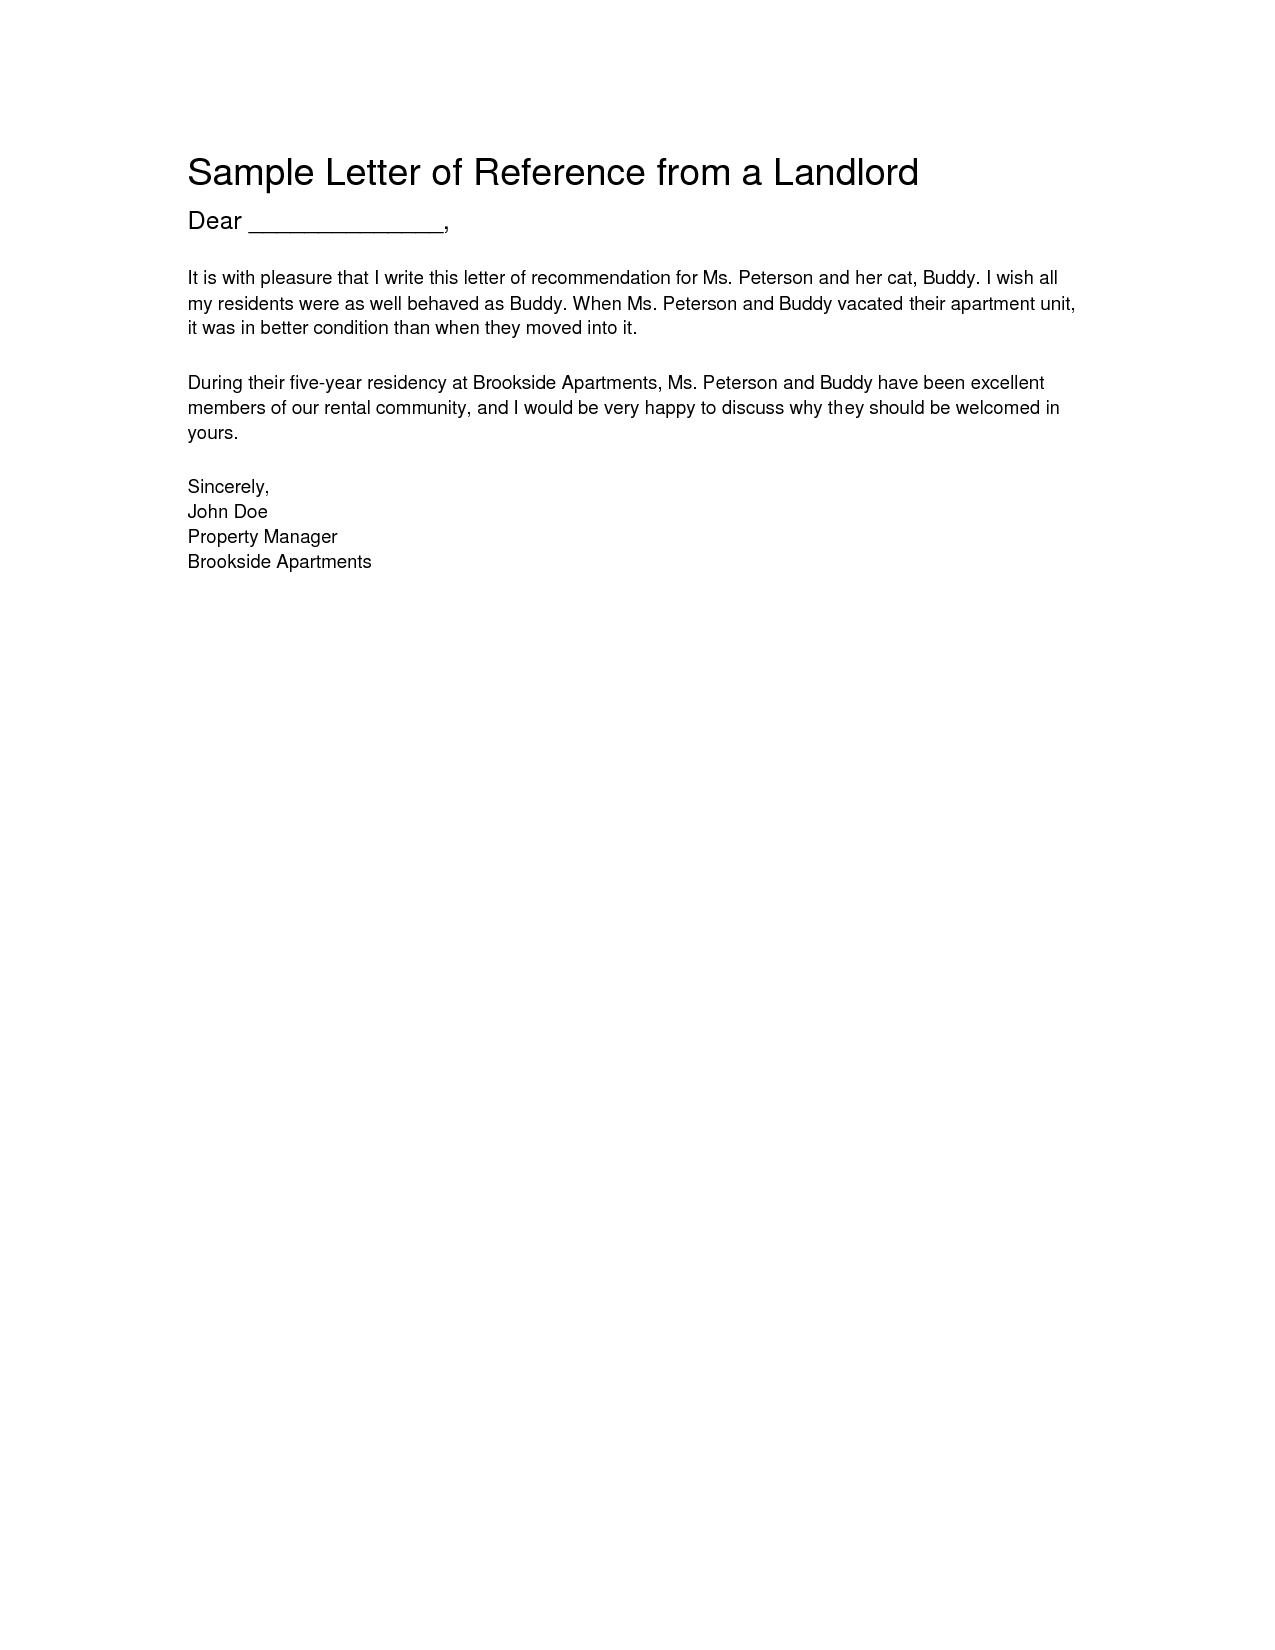 Landlord Reference Letter Template - Letter Re Mendation From Landlord Letter Of Re Mendation